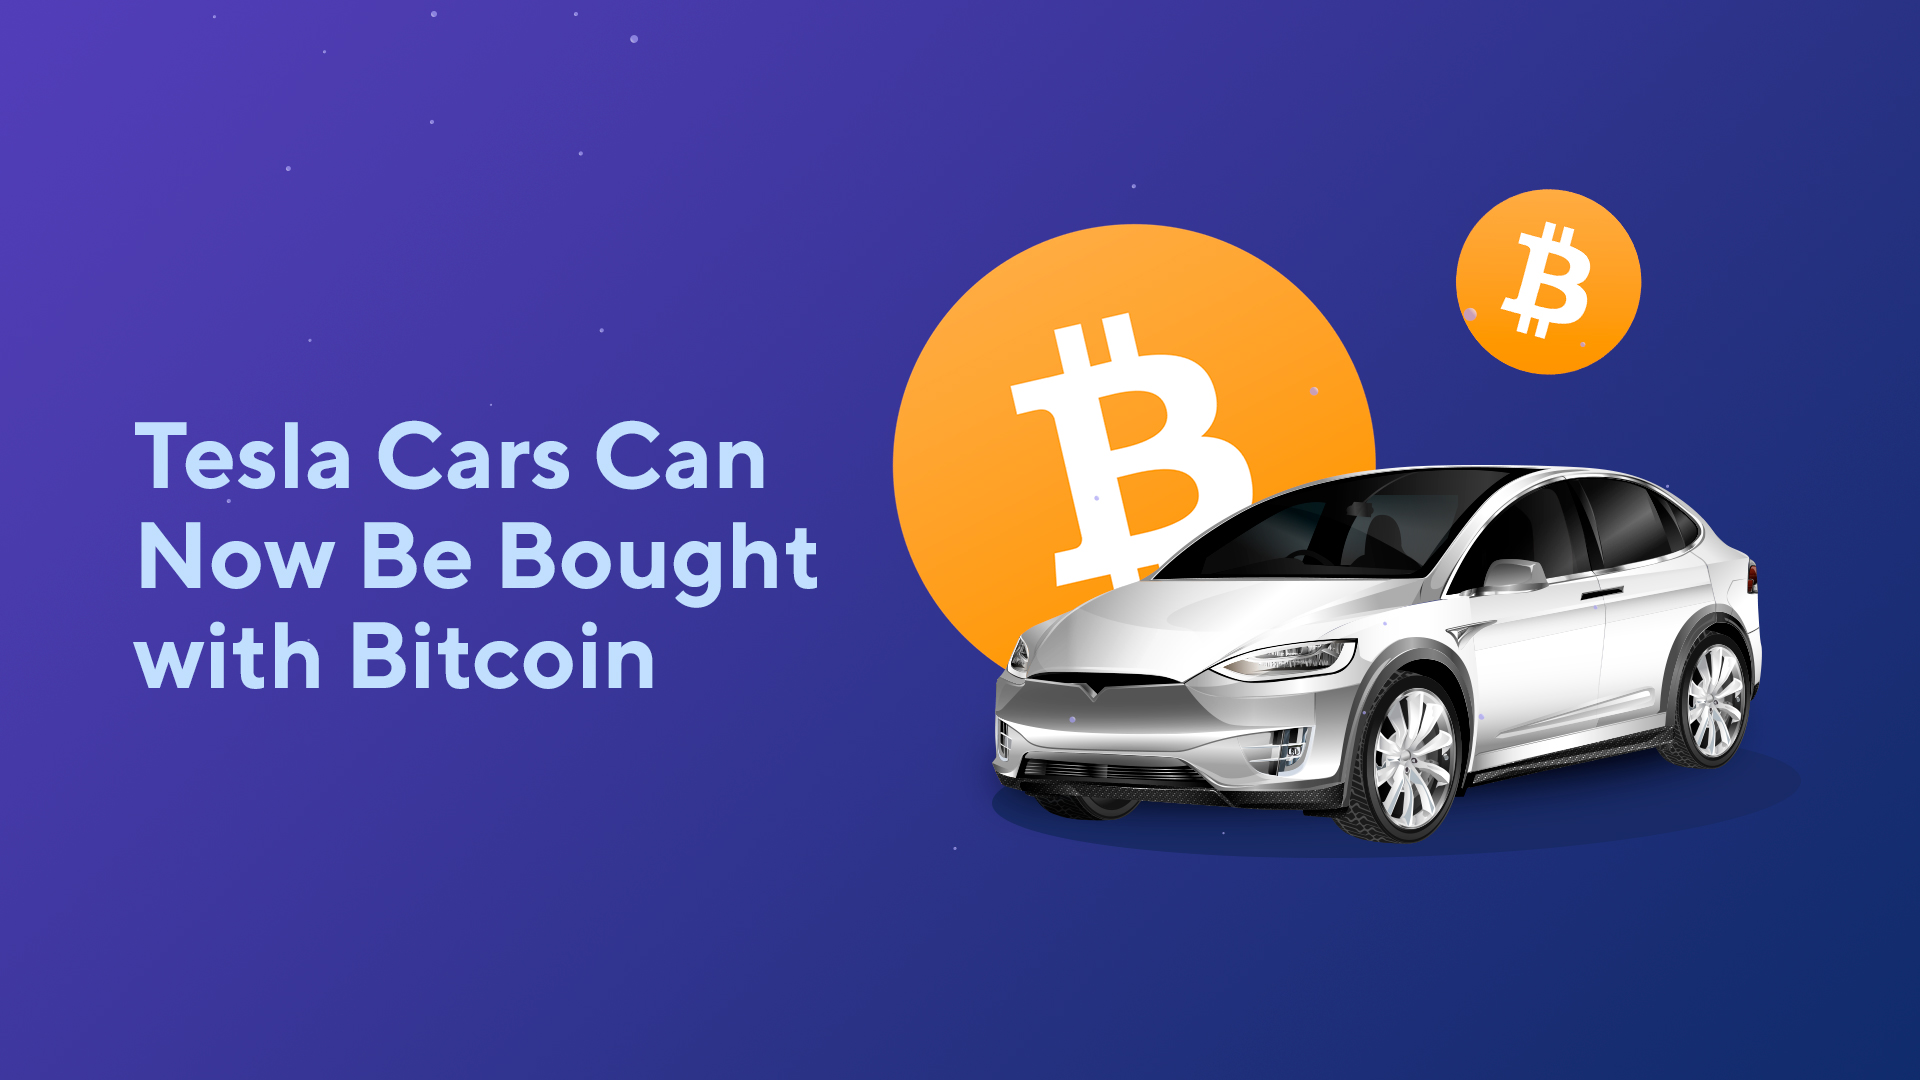 Tesla Cars Can Now Be Bought with Bitcoin